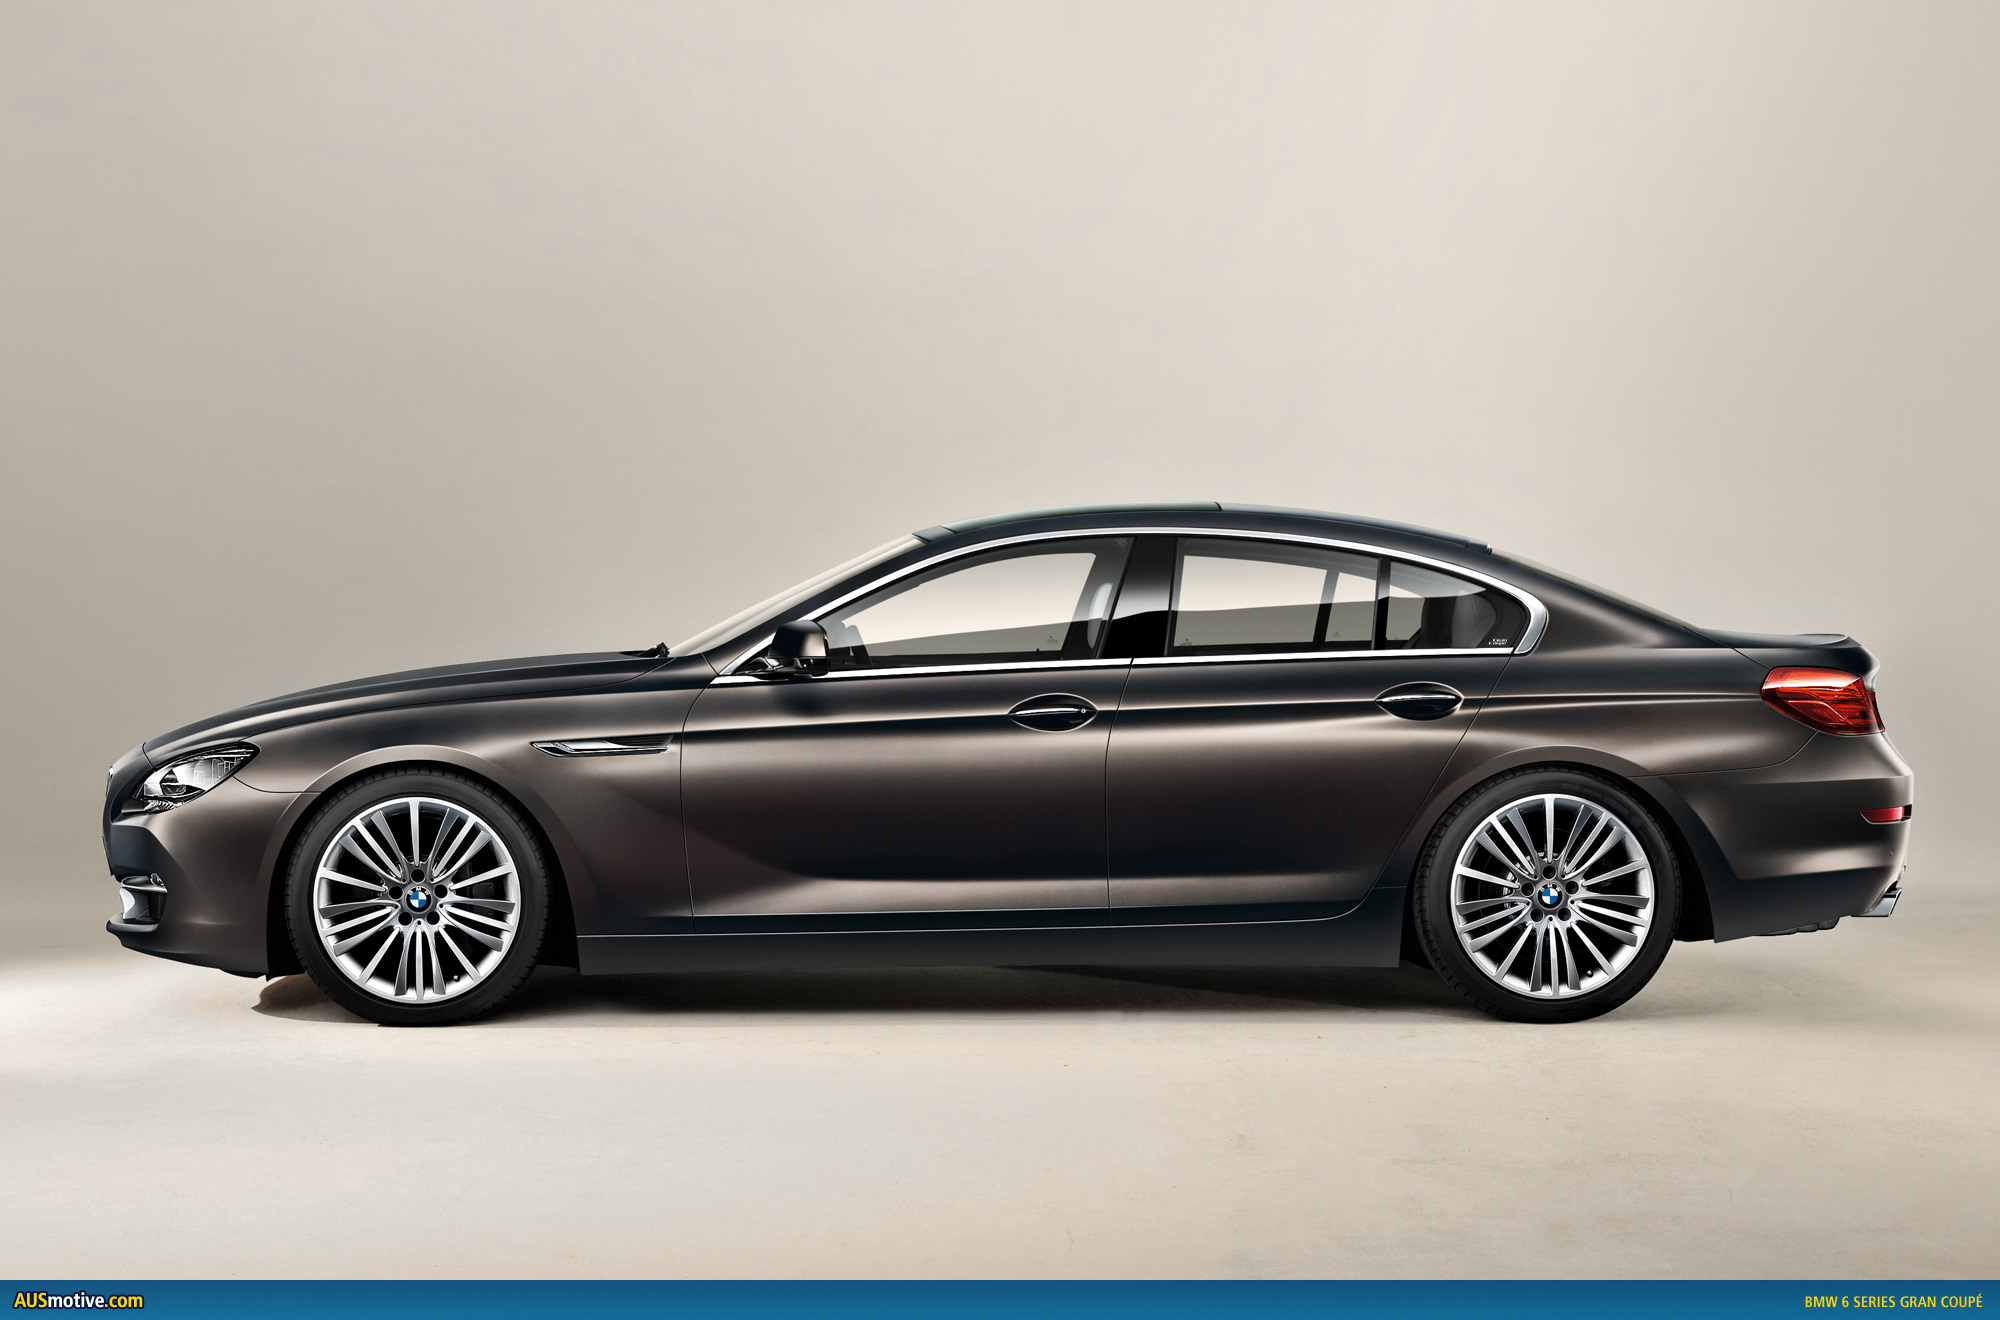 bmw 6 series gran coup revealed. Black Bedroom Furniture Sets. Home Design Ideas